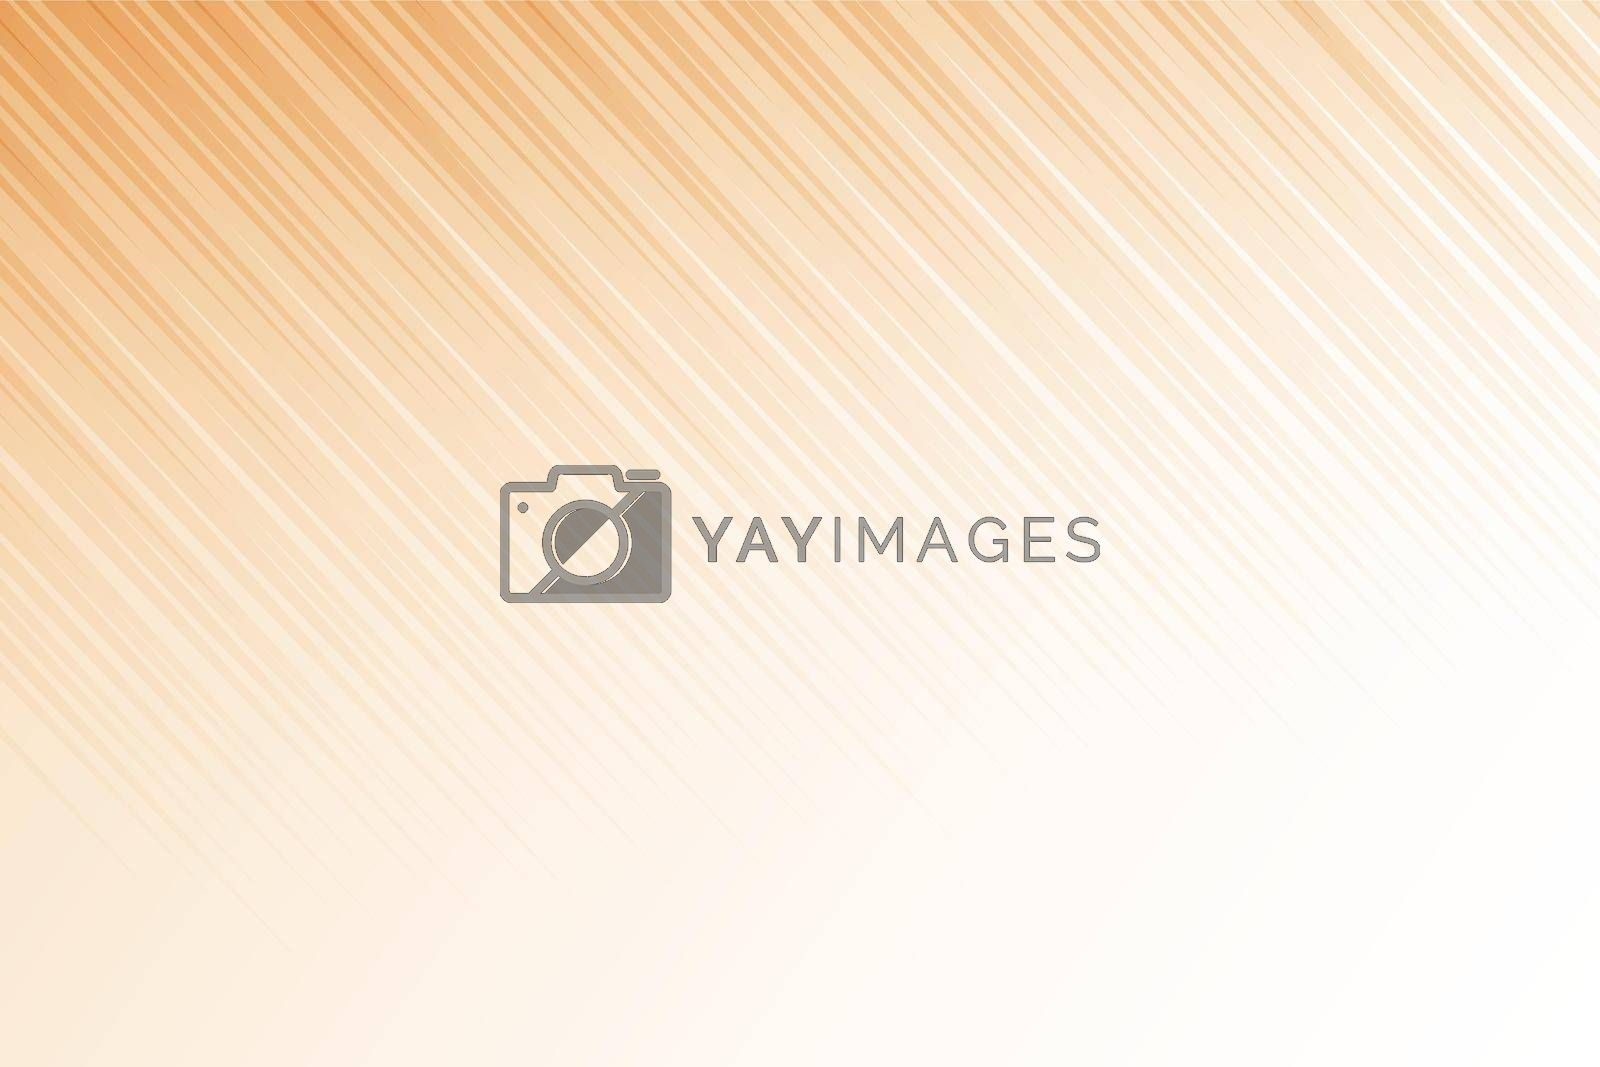 Abstract orange background with gradient. Orange gradient background, a template for banners, postcards, posters, and creative design. Gradient design.